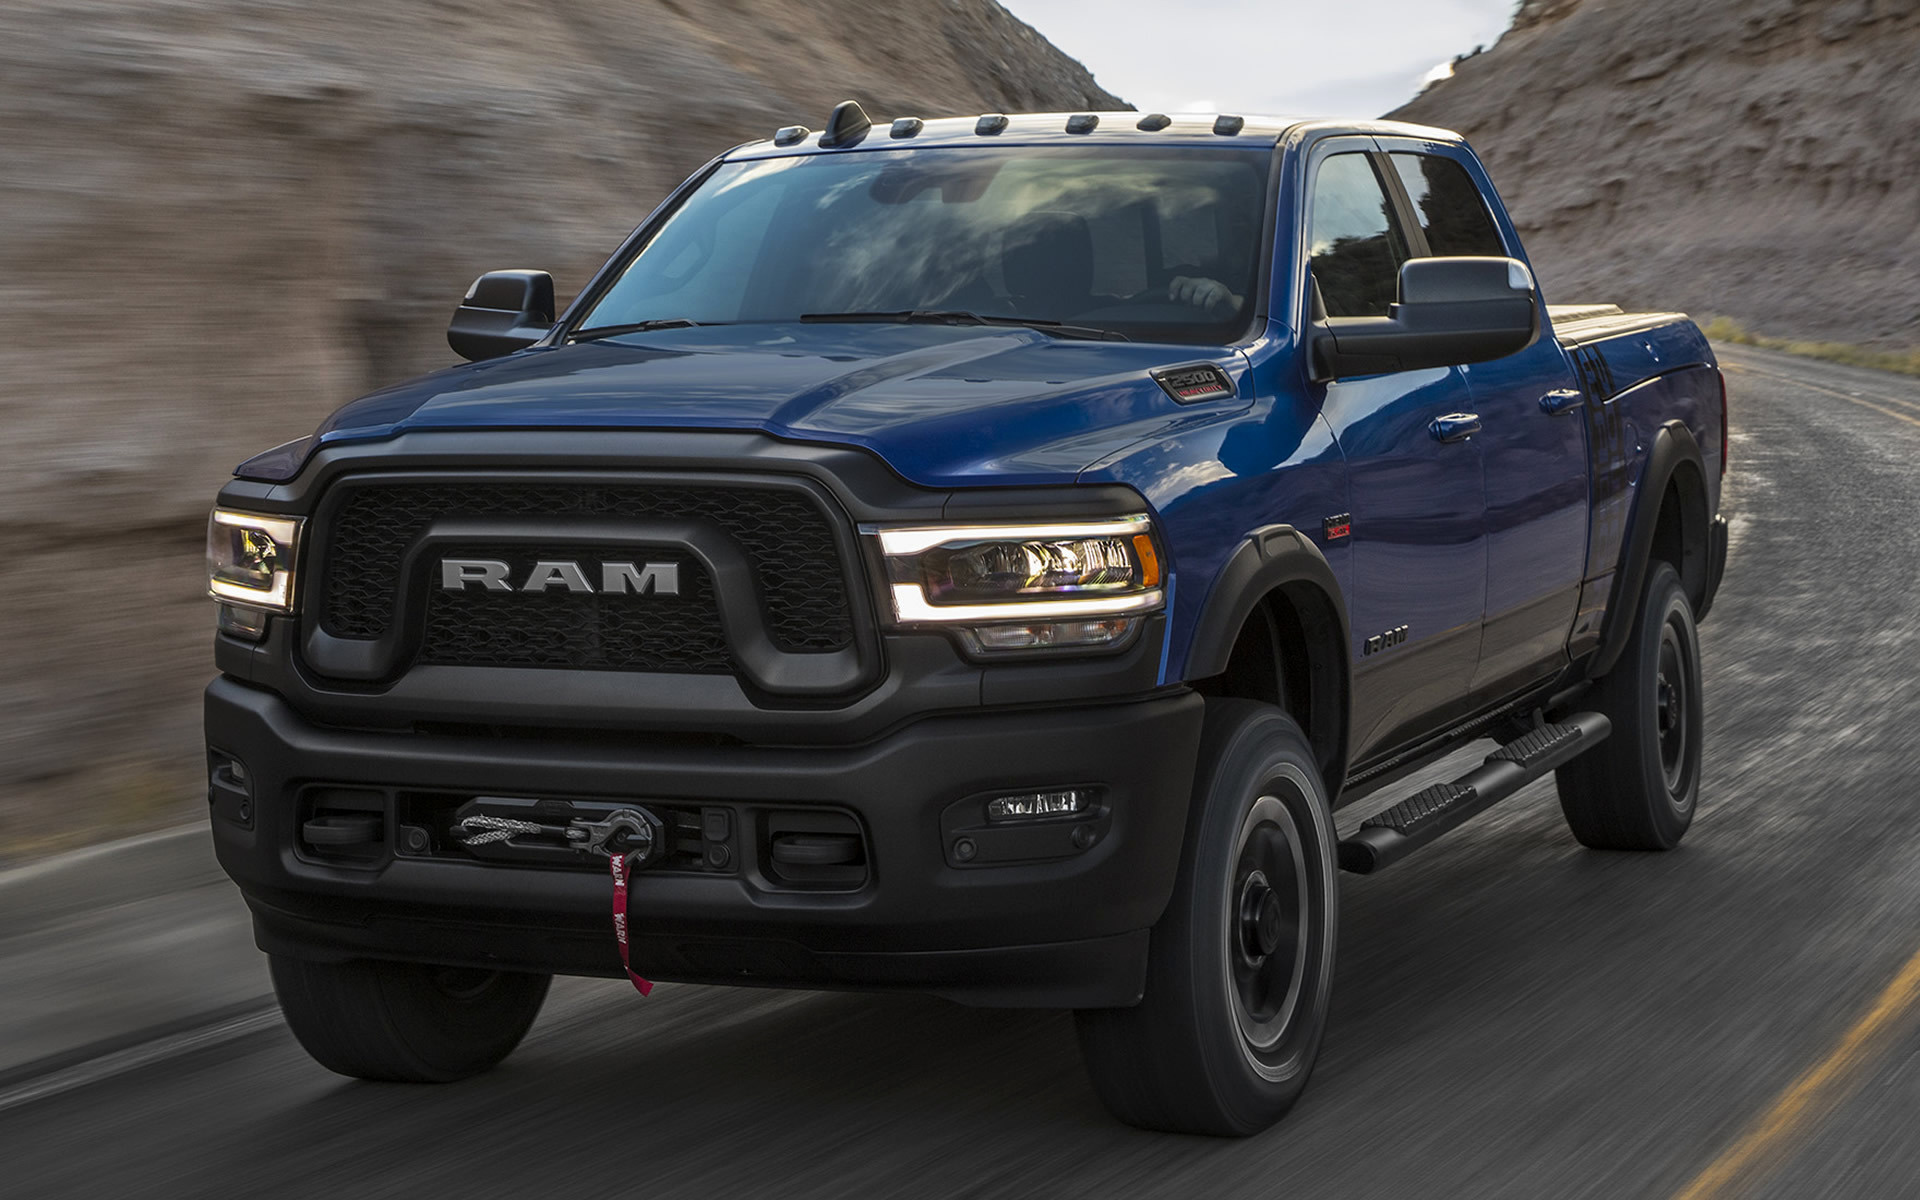 Ed Martin Gmc >> 2019 Ram 2500 Power Wagon Crew Cab - Wallpapers and HD ...